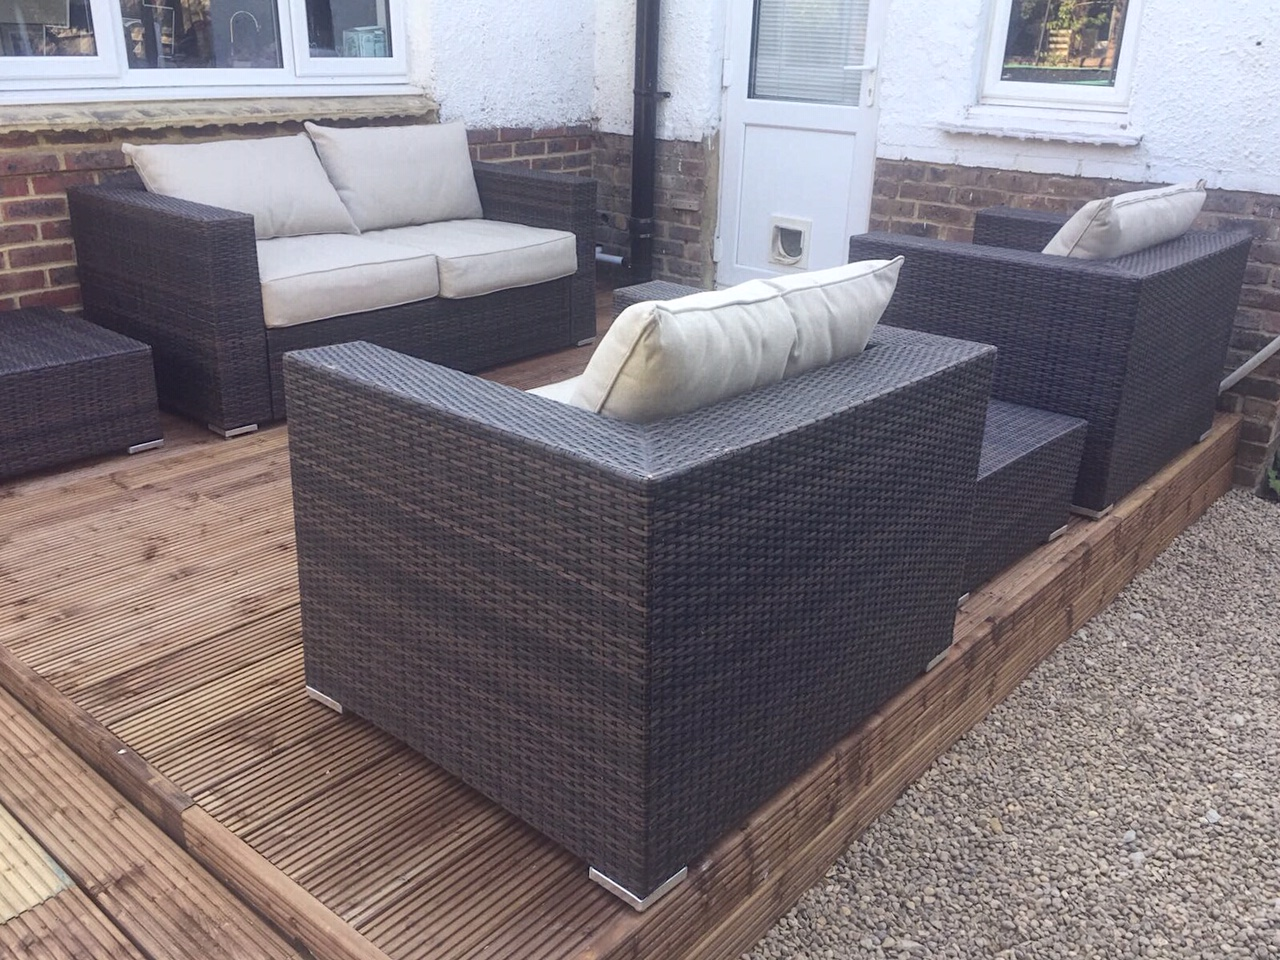 Our Borneo rattan furniture from  Asda